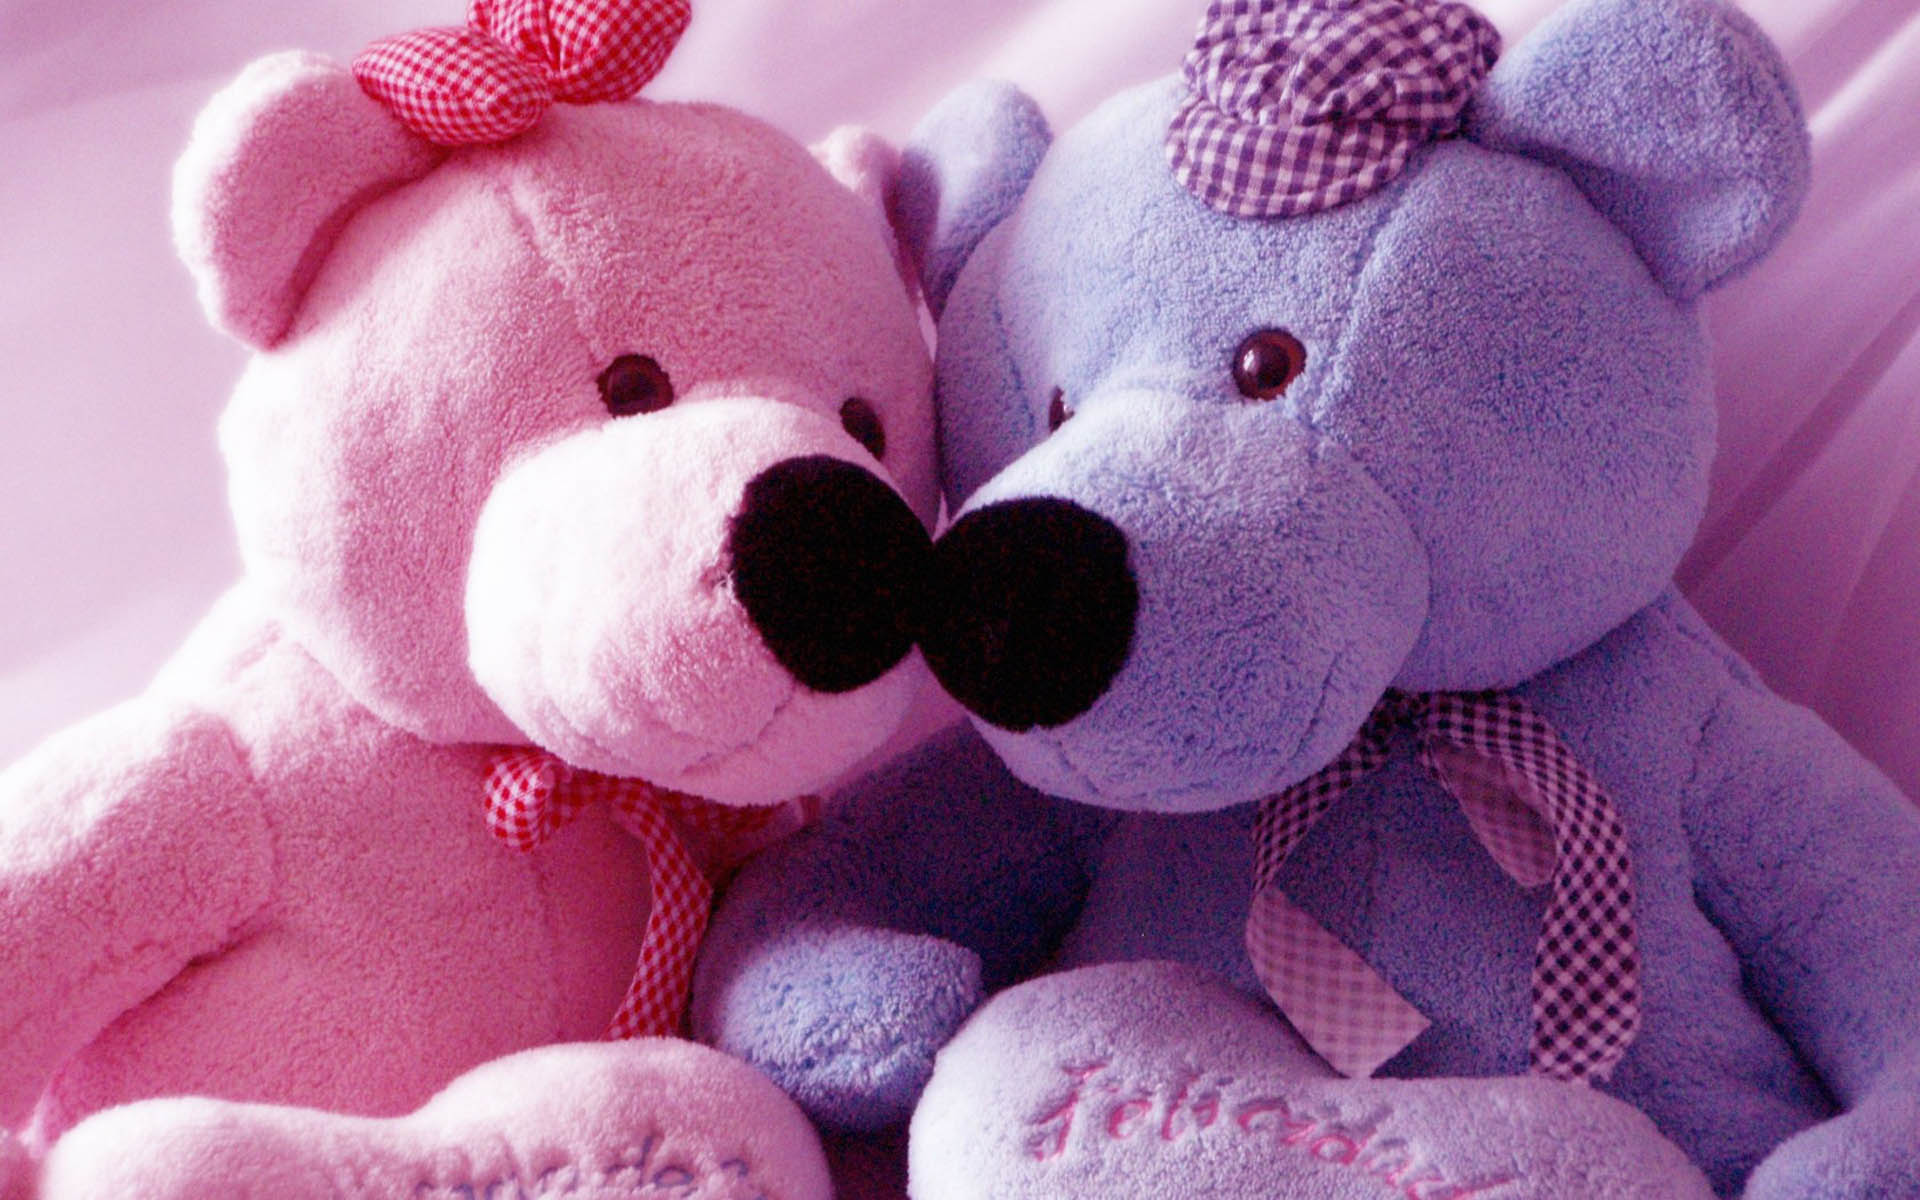 Download 100 Lovely Teddy Bear Wallpaper Images The 1920x1200